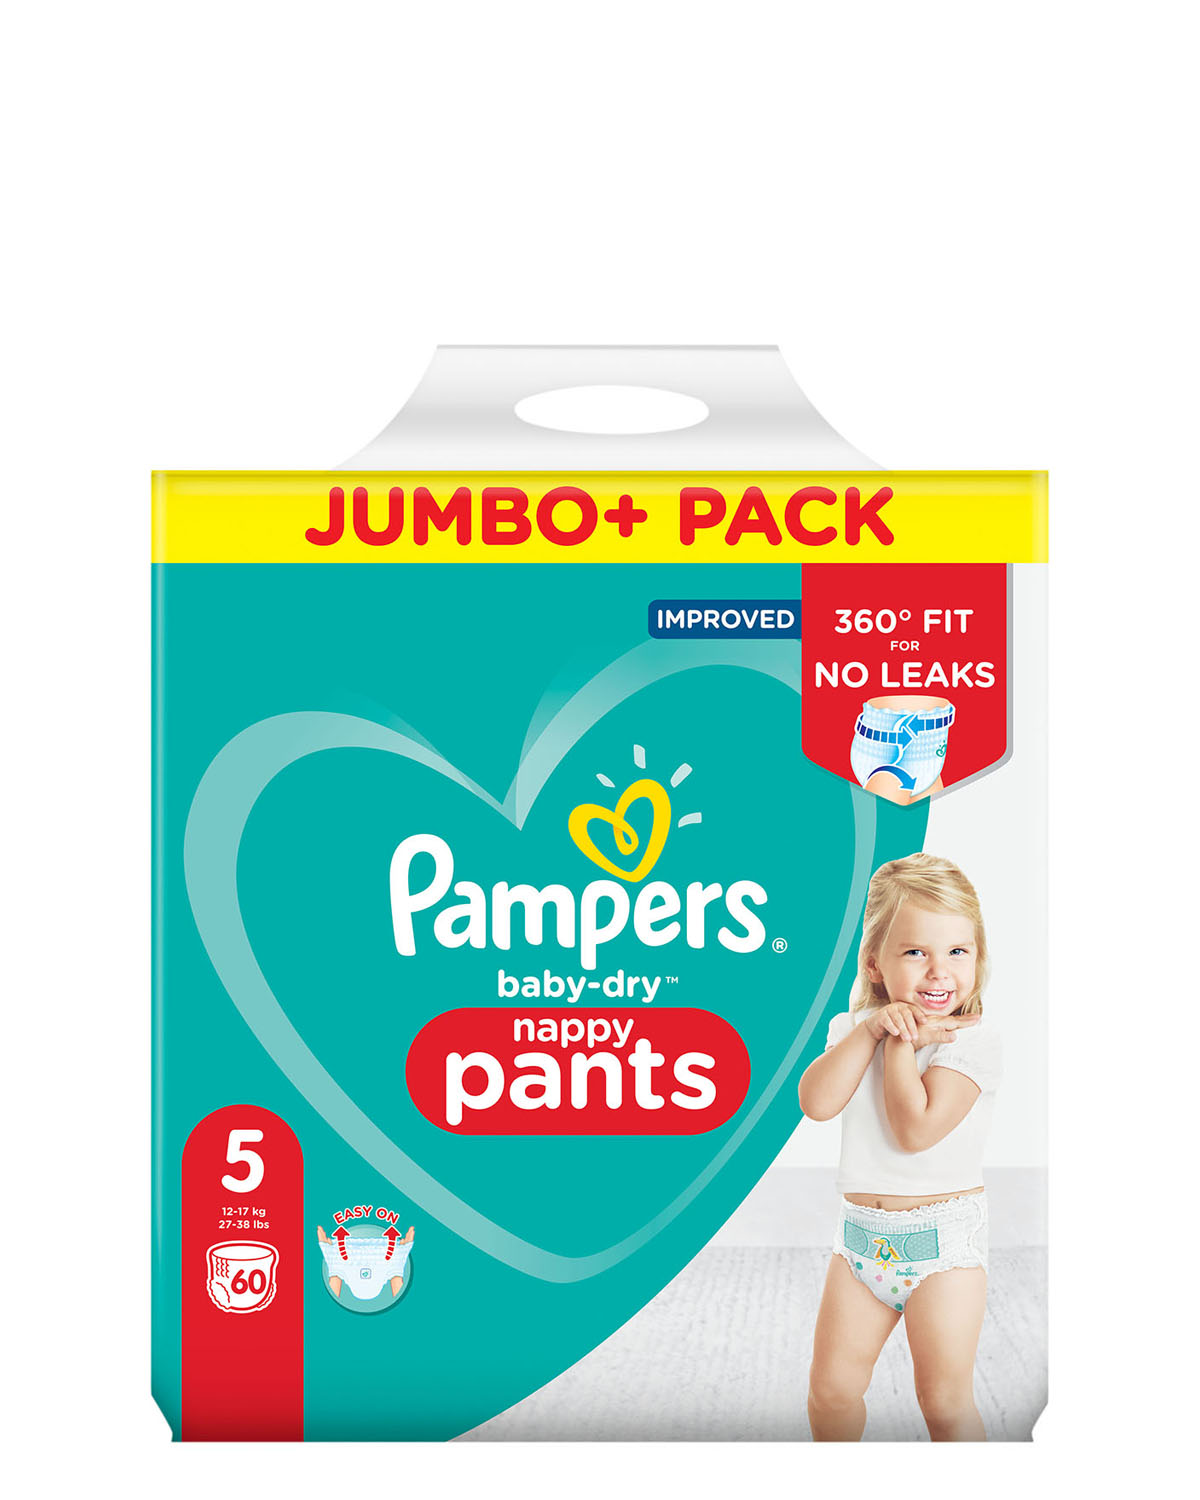 Pampers Baby Dry Pants Size: 5 Jumbo Pack - 60 Nappies